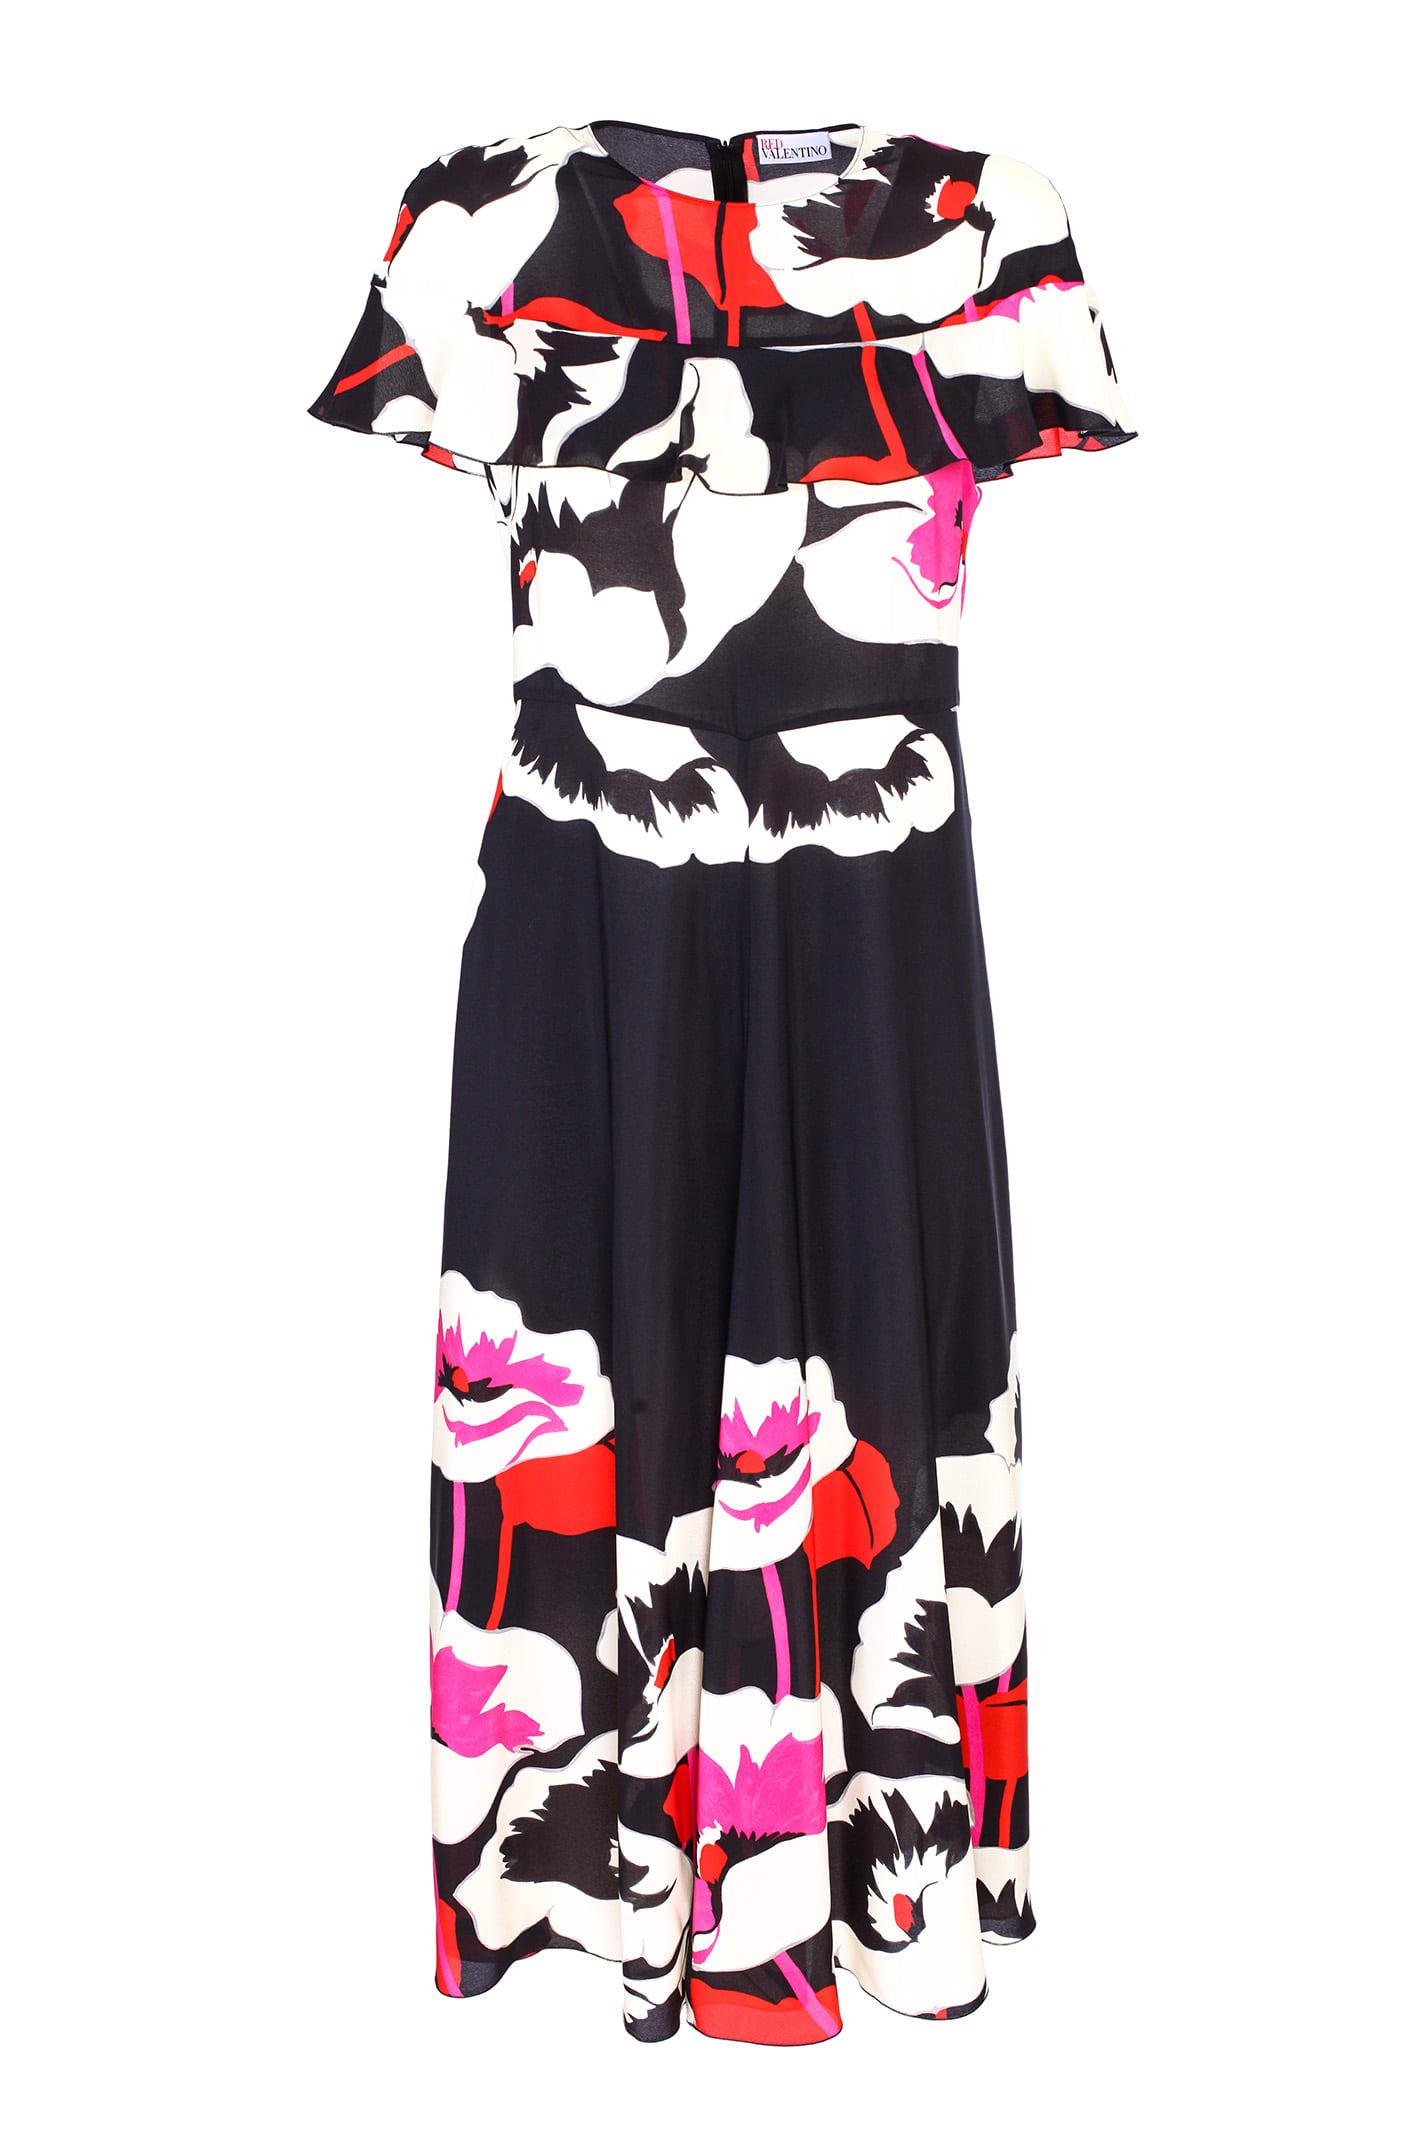 Red Valentino floral Longuette dress